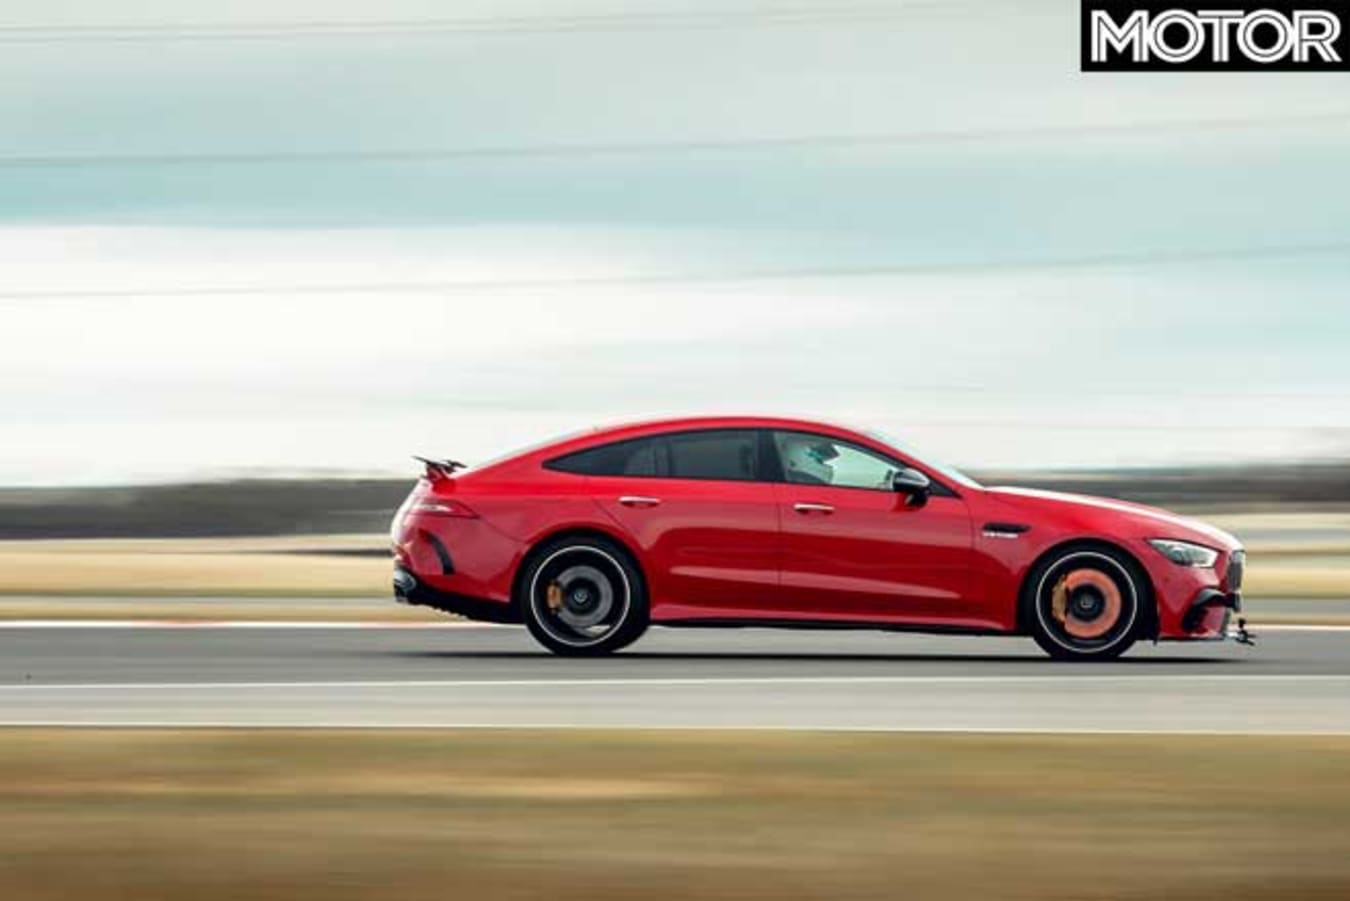 Performance Car Of The Year 2020 Drag Performance Test AMG GT 63 S Jpg